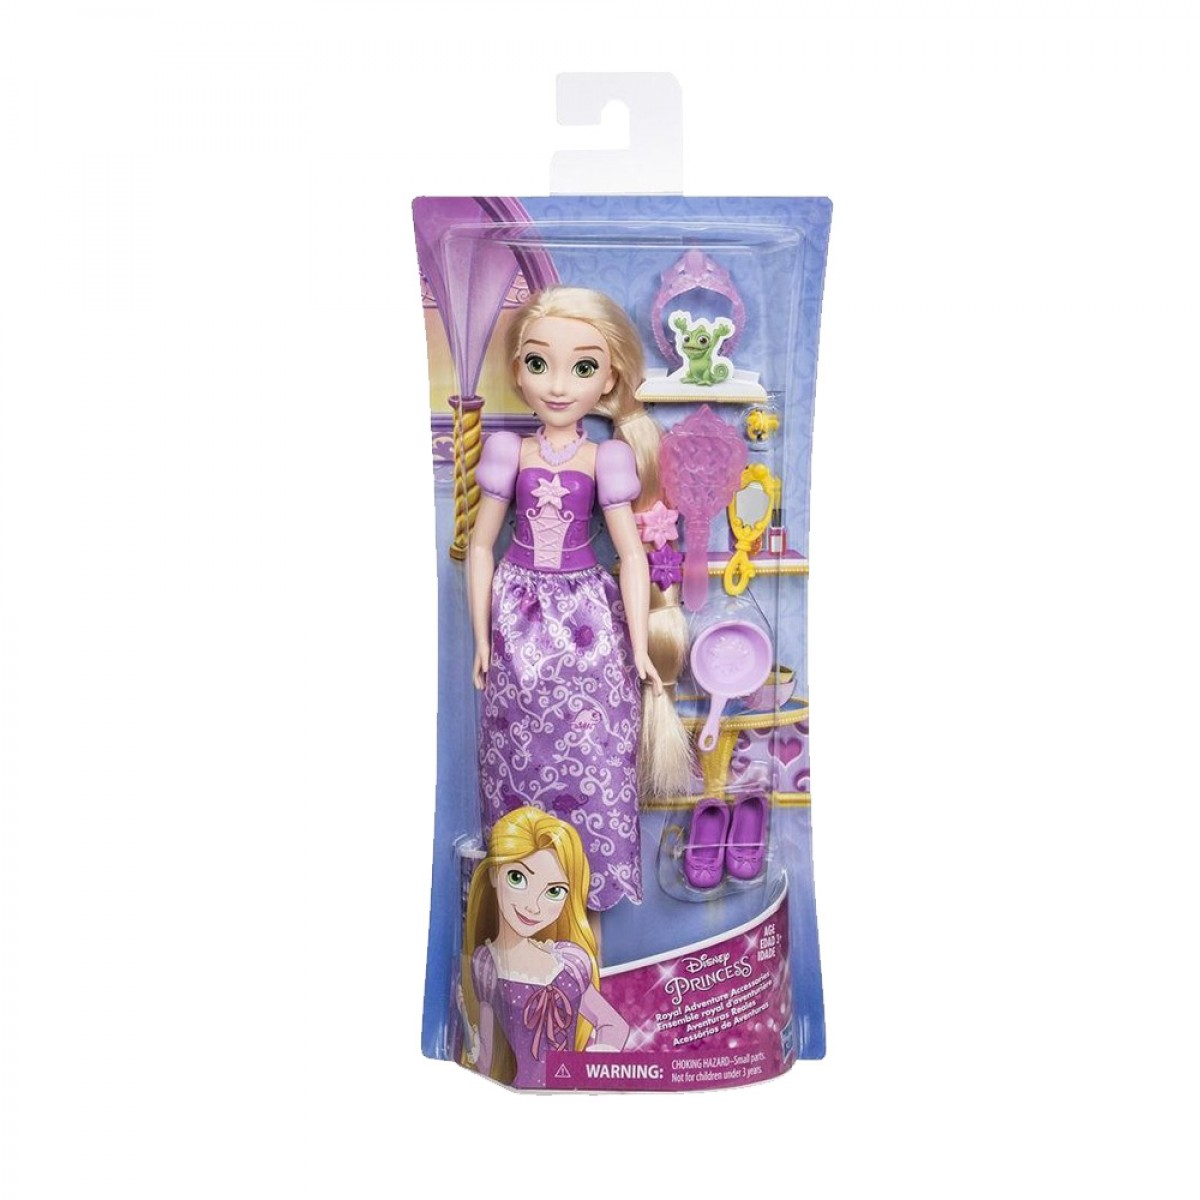 DISNEY PRINCESS DOLL WITH ACCESORIES 3048